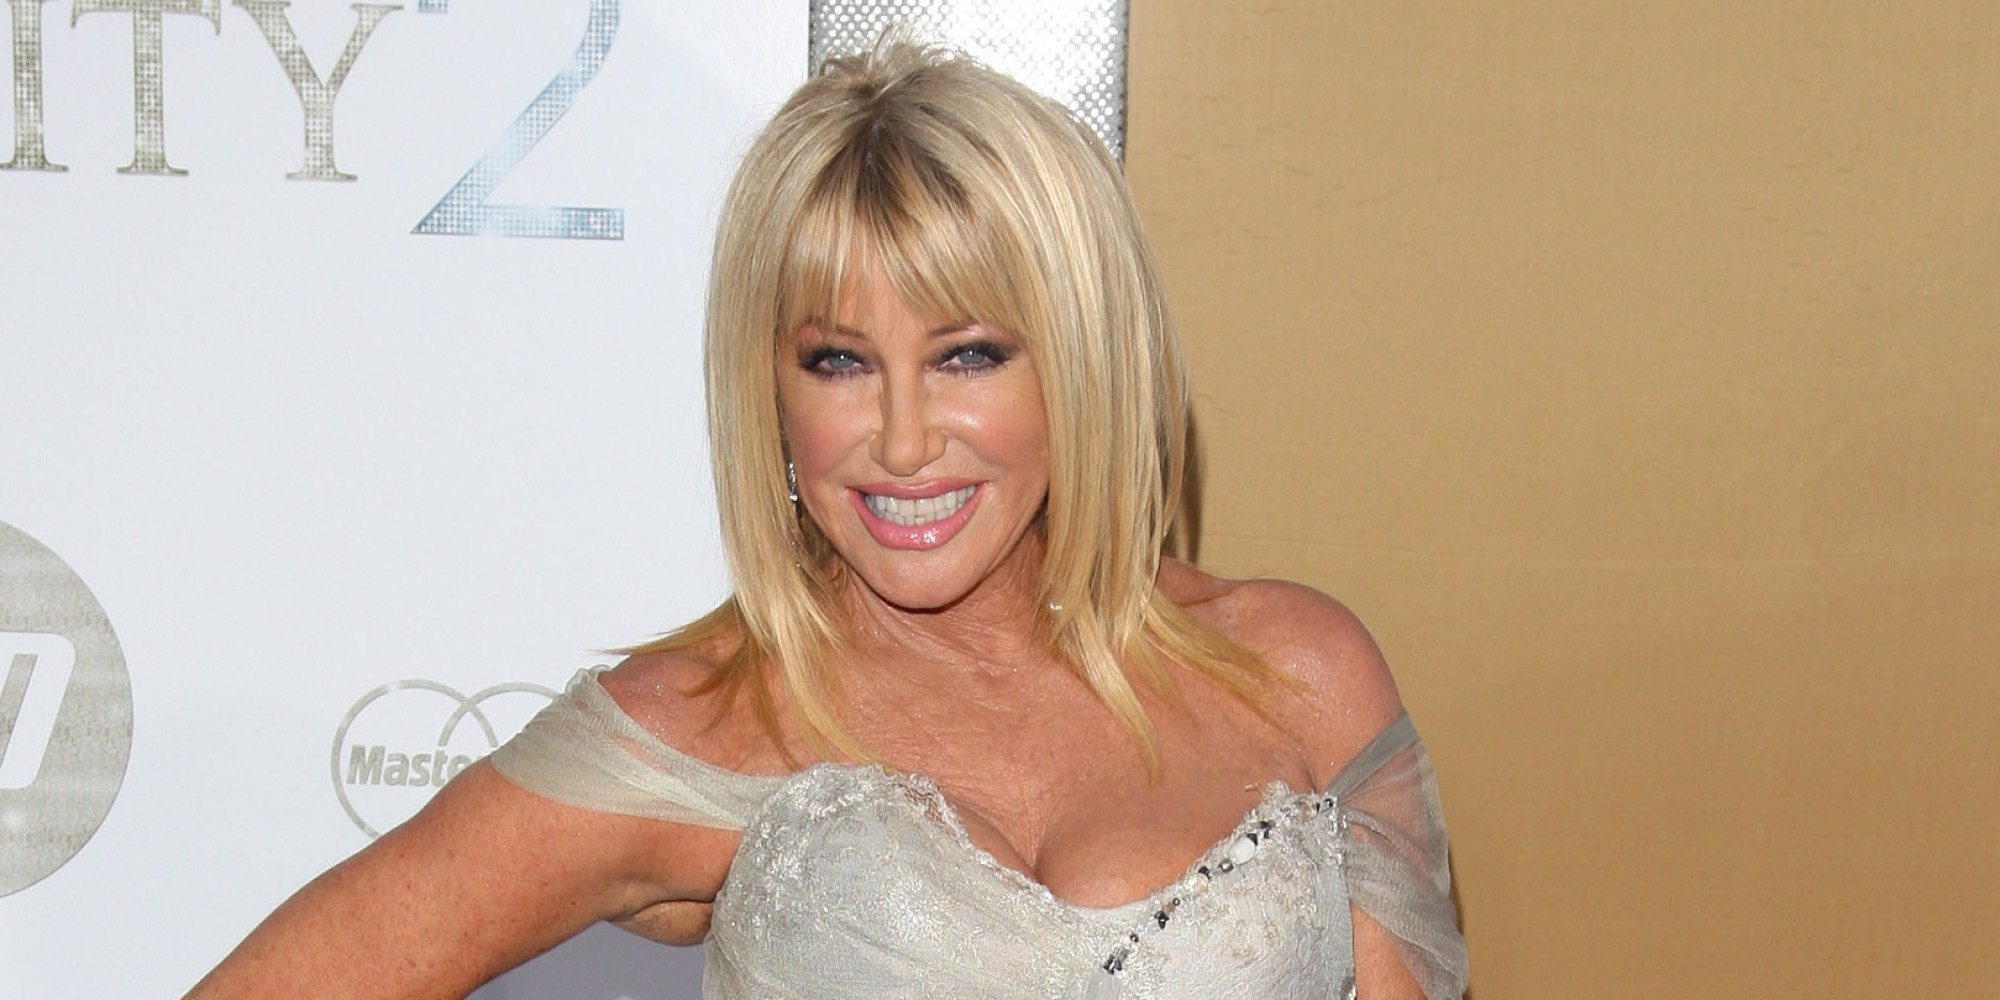 ICloud Suzanne Somers nudes (52 photo), Pussy, Is a cute, Twitter, lingerie 2020